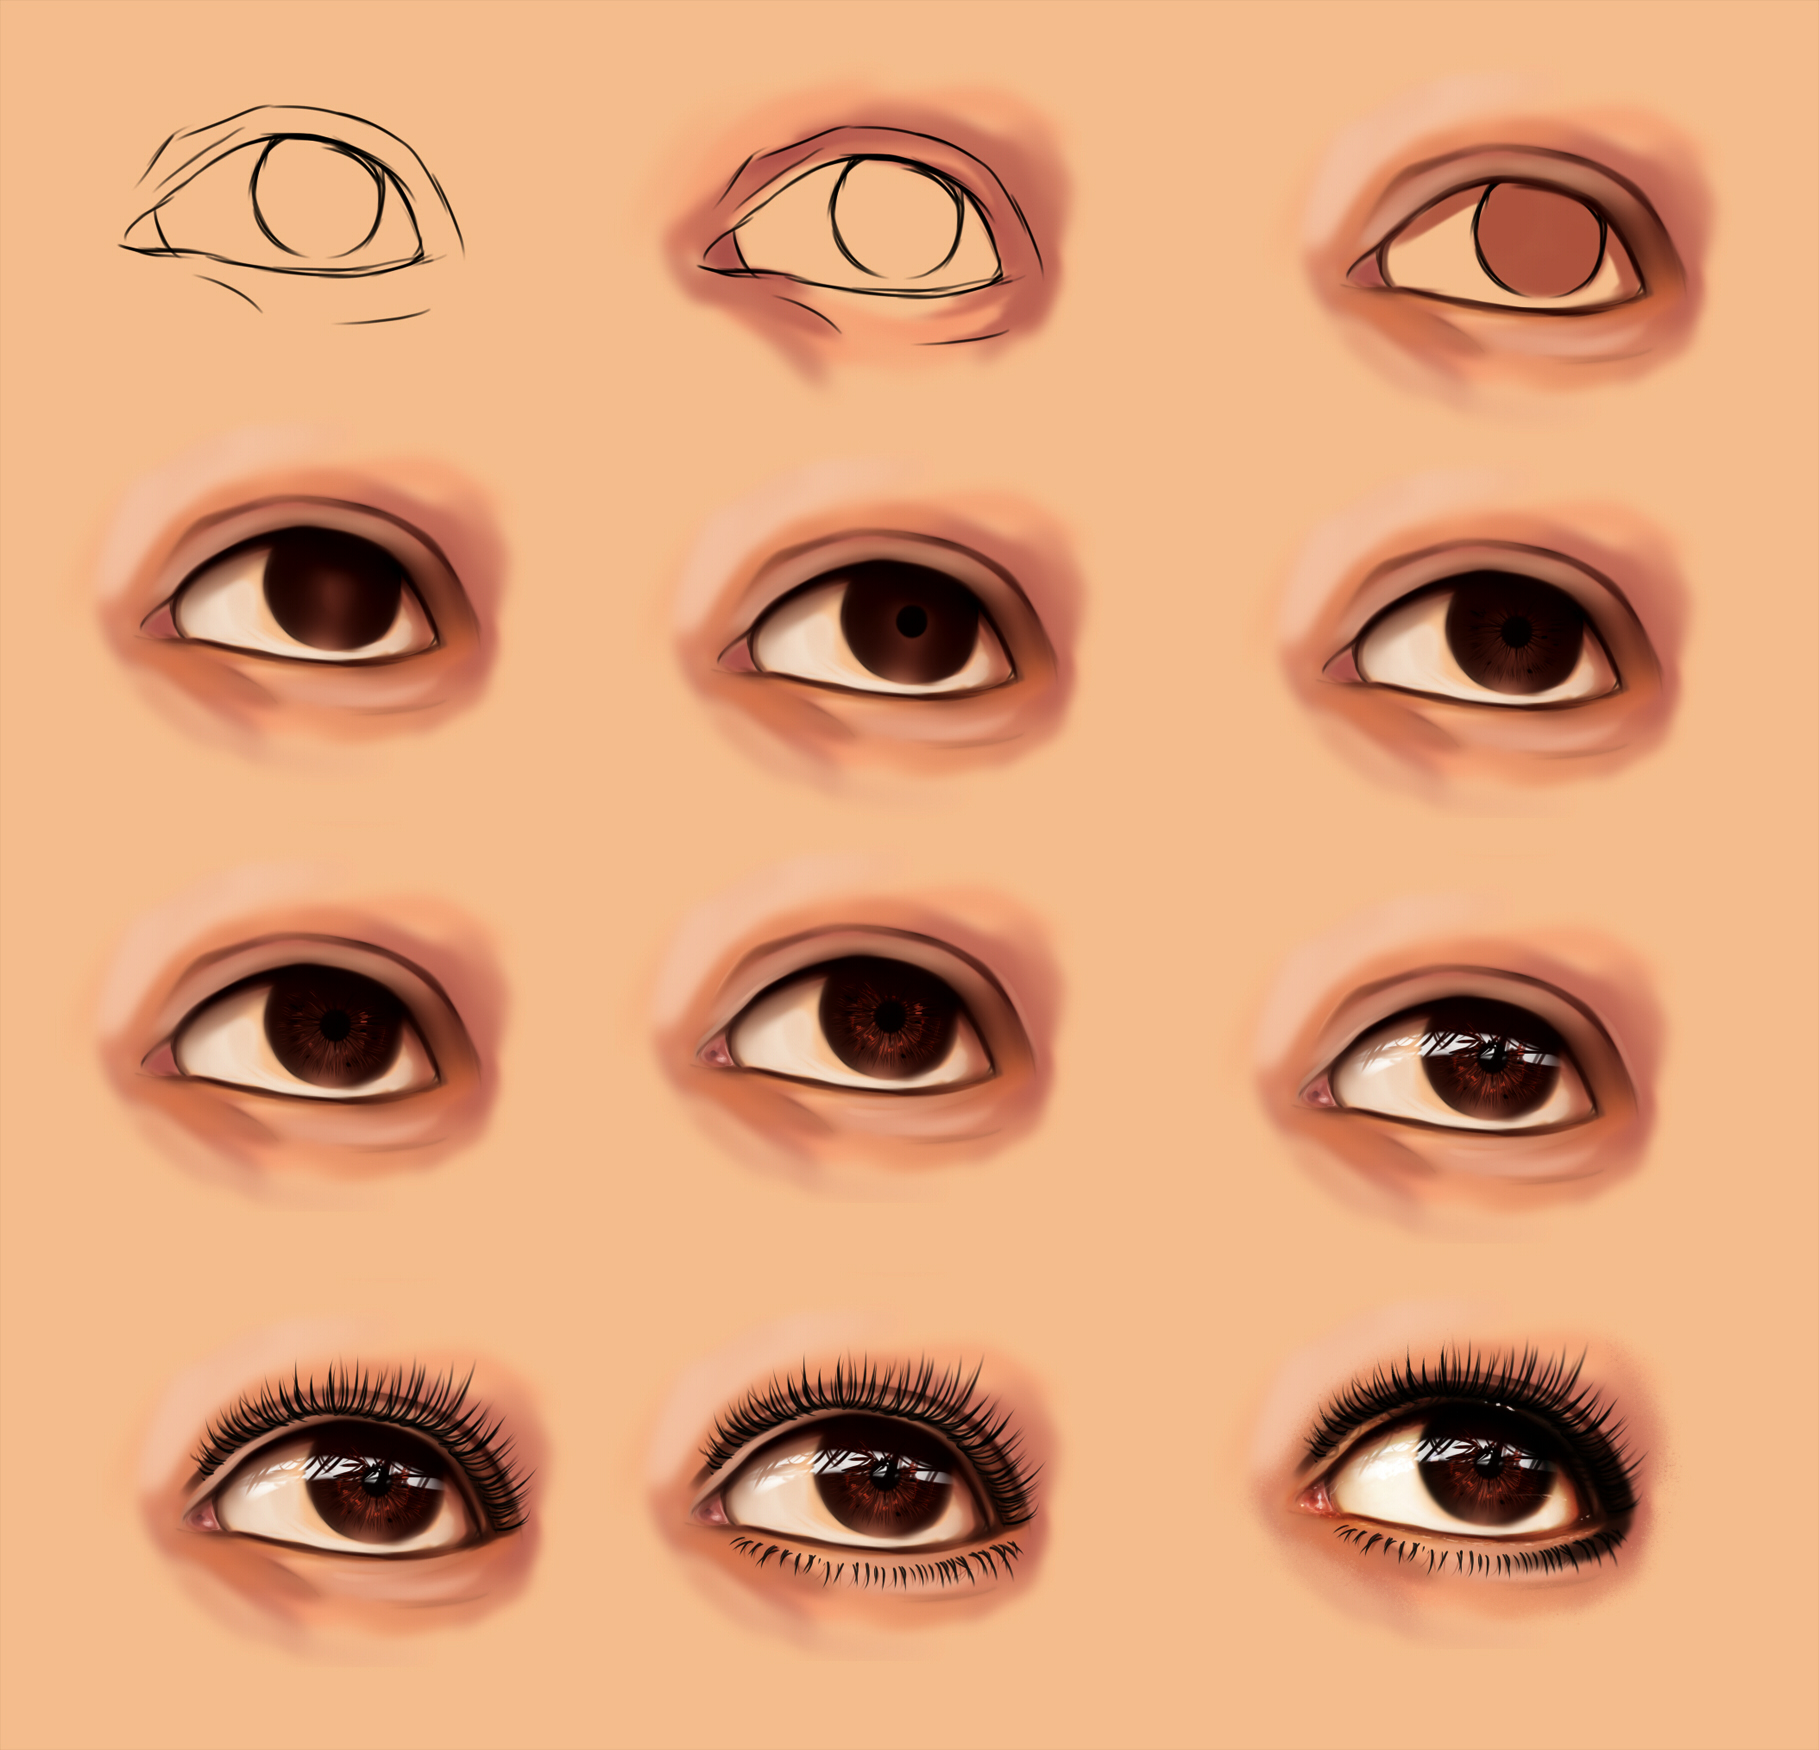 How i draw realistic eye